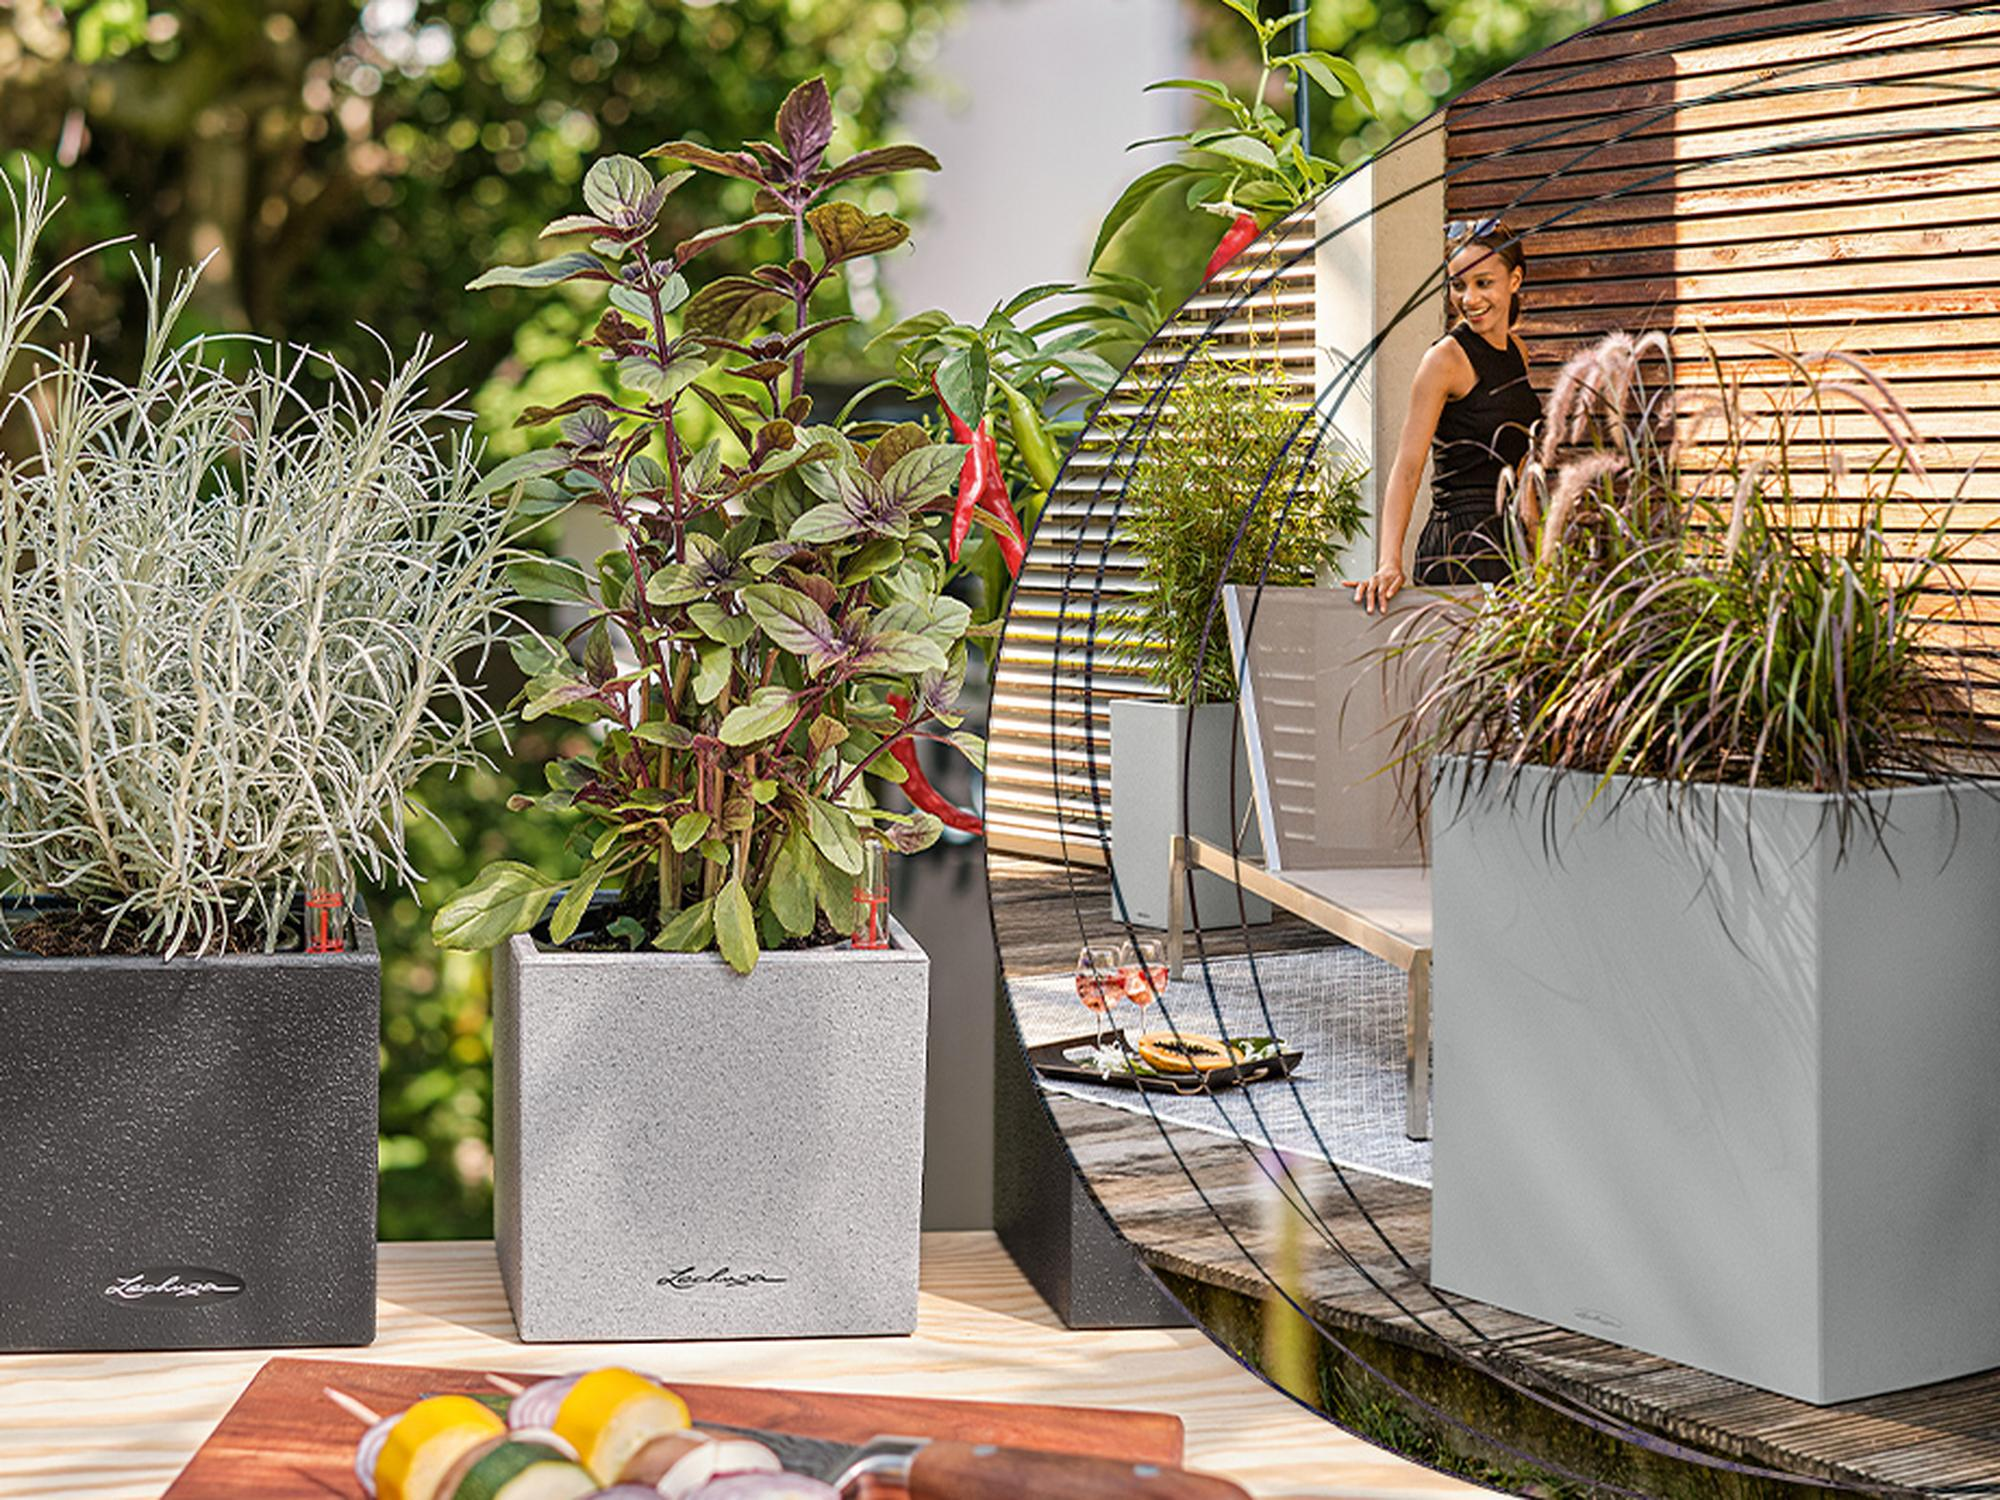 Buy 1 planter and get a 7% discount on another item in your basket